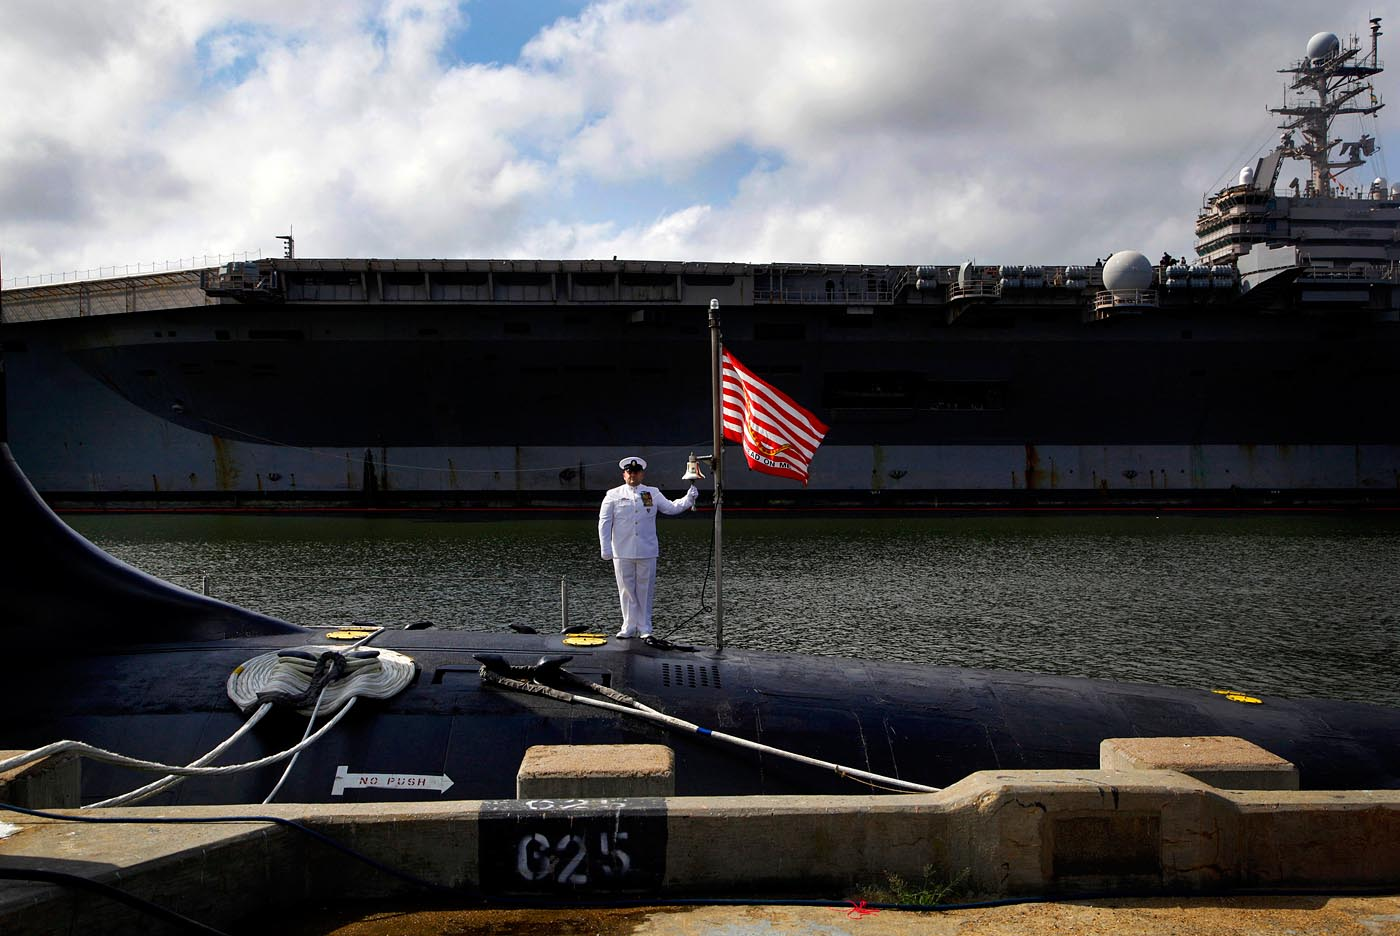 Chief Petty Officer Mark Eichenlaub stands on the submarine USS New Mexico while rendering the honors at the start of the Submarine Forces Change of Command ceremony at Norfolk Naval Station in Norfolk, Va., on Friday, September 7, 2012. In the background is the aircraft carrier USS Abraham Lincoln.